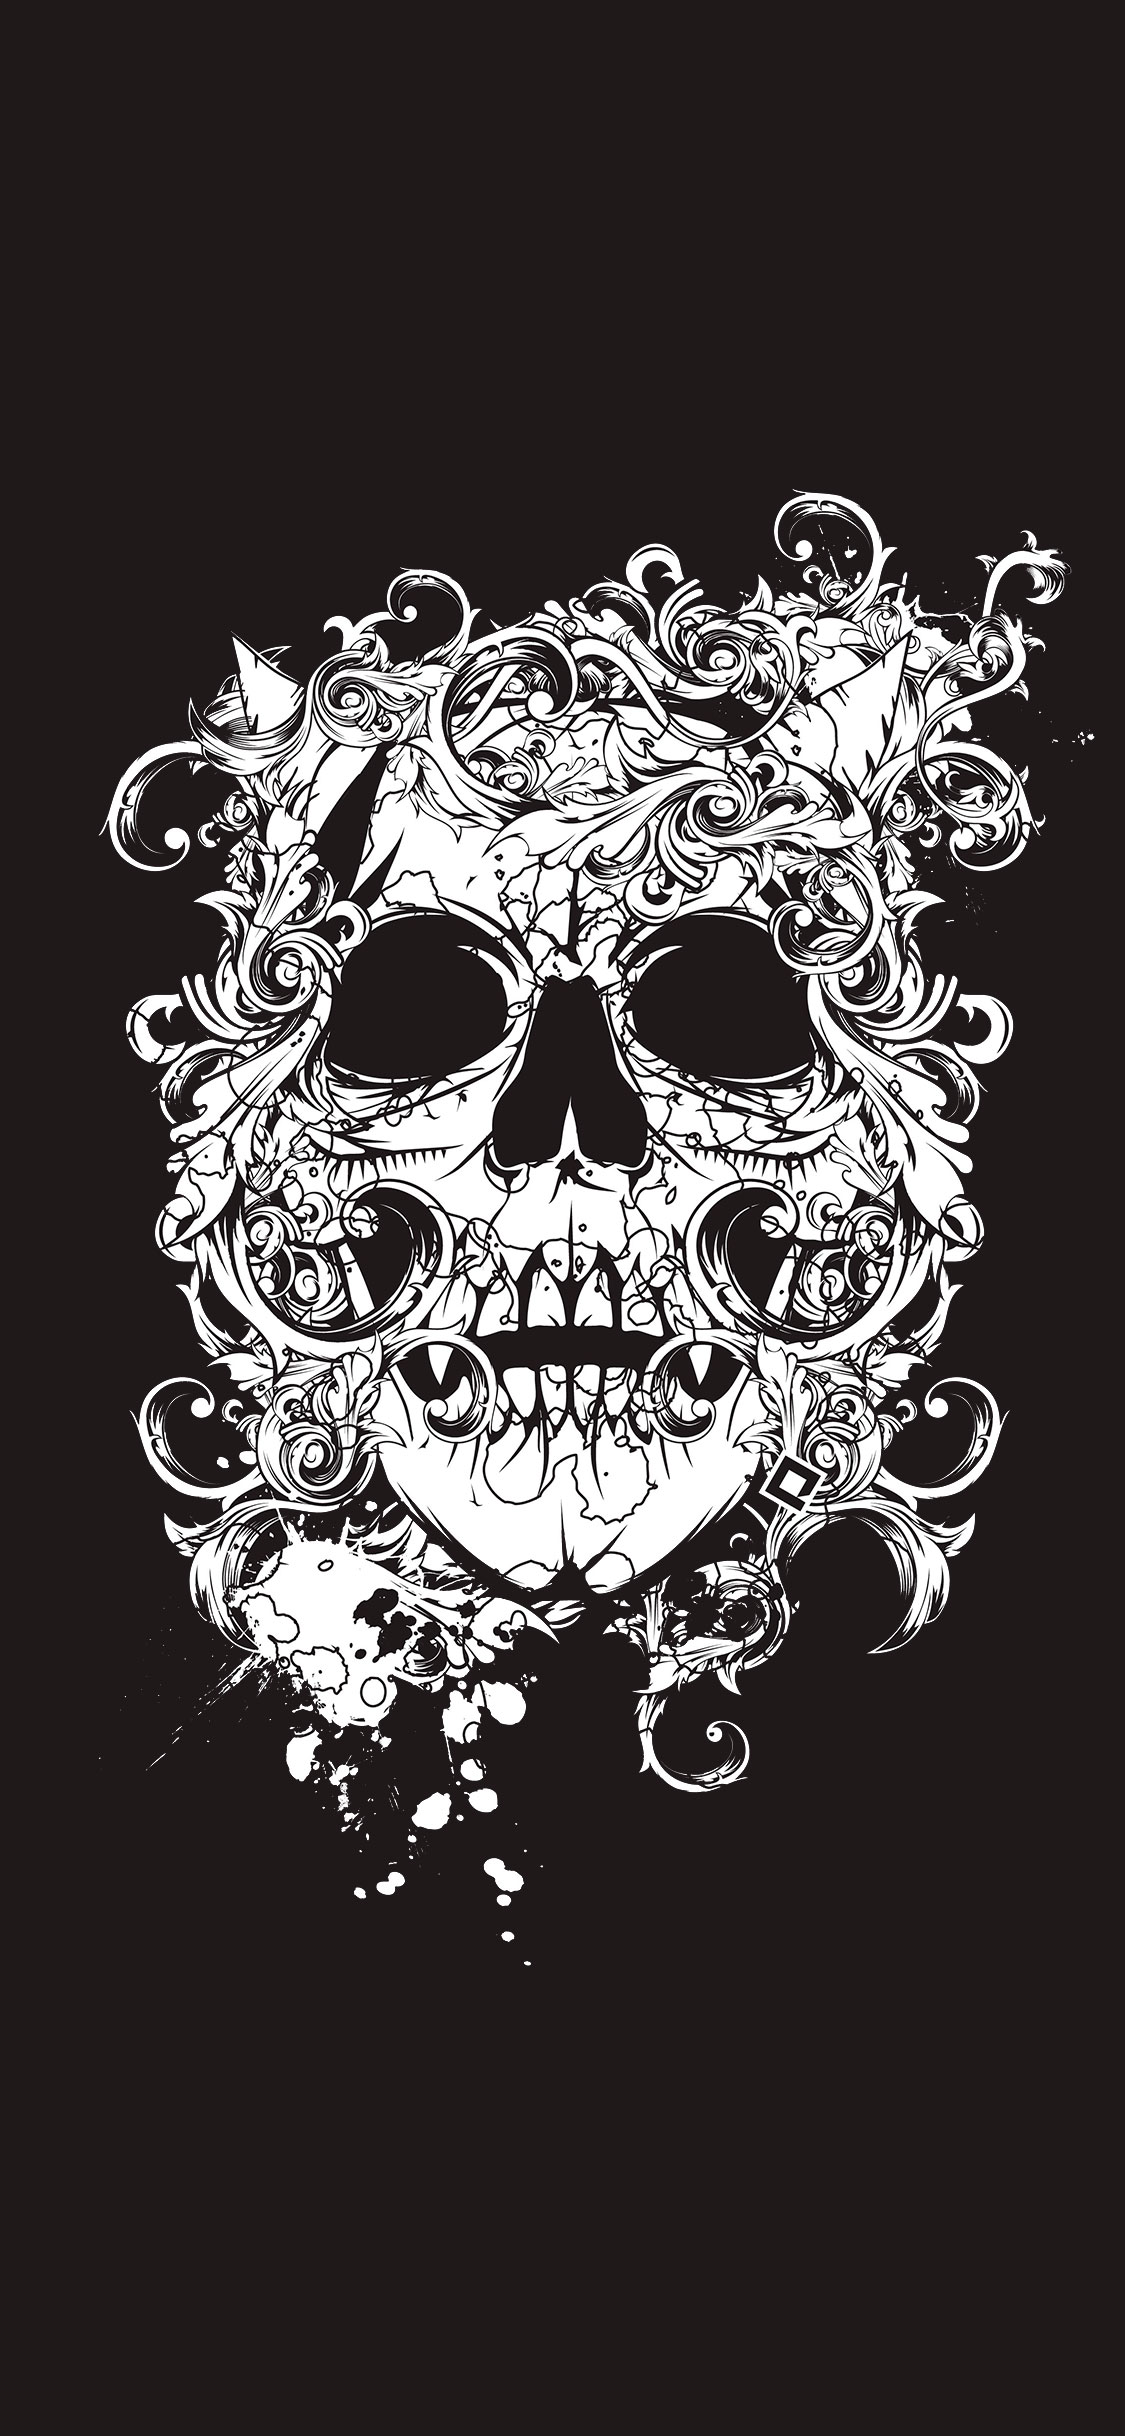 iPhone wallpaper illustration skull Illustration